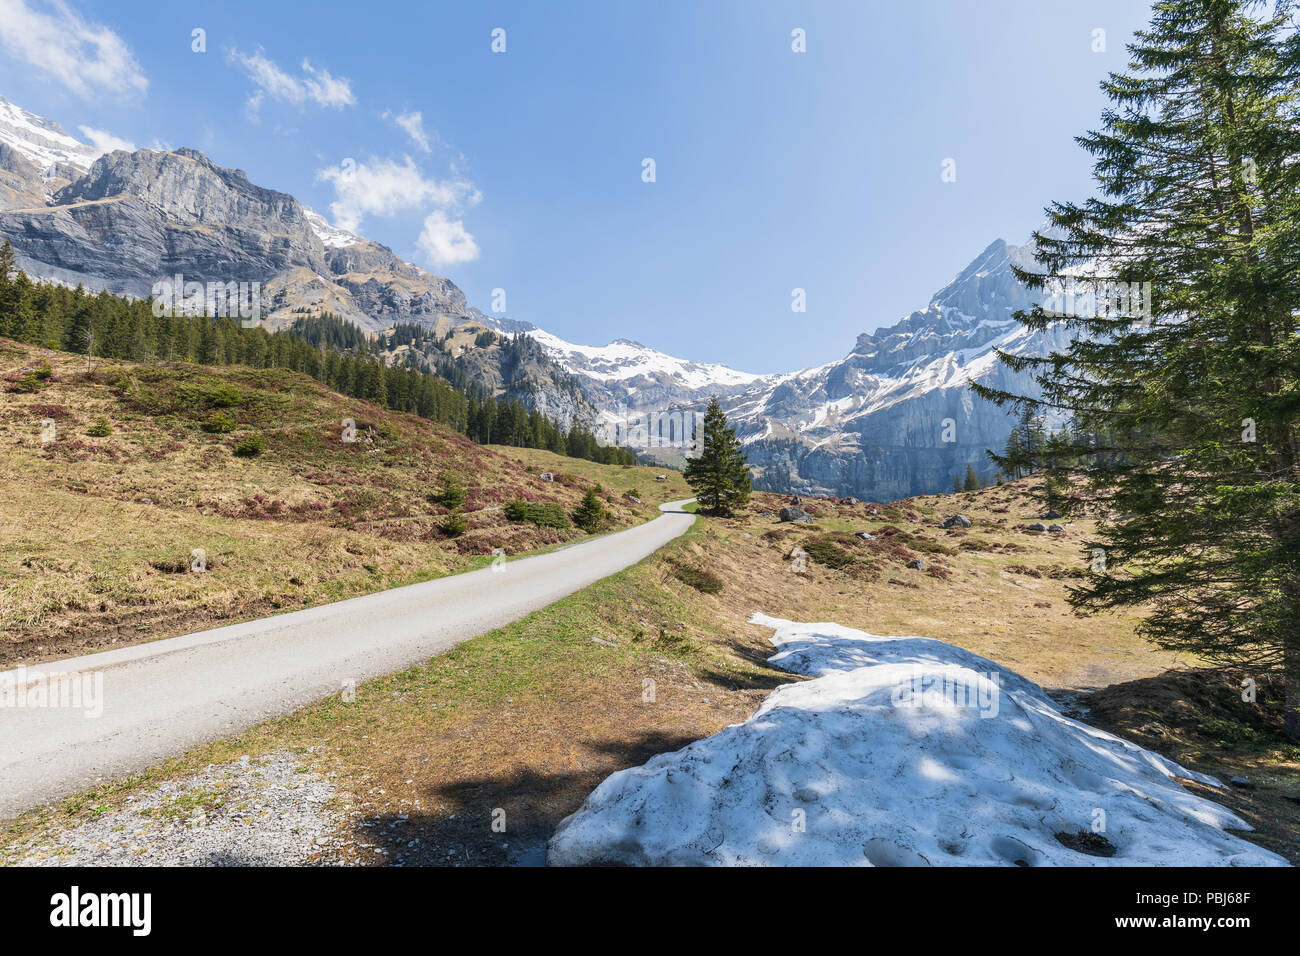 Panorama view of the Alps on a snow covered hiking path near Kandersteg switzerland Stock Photo